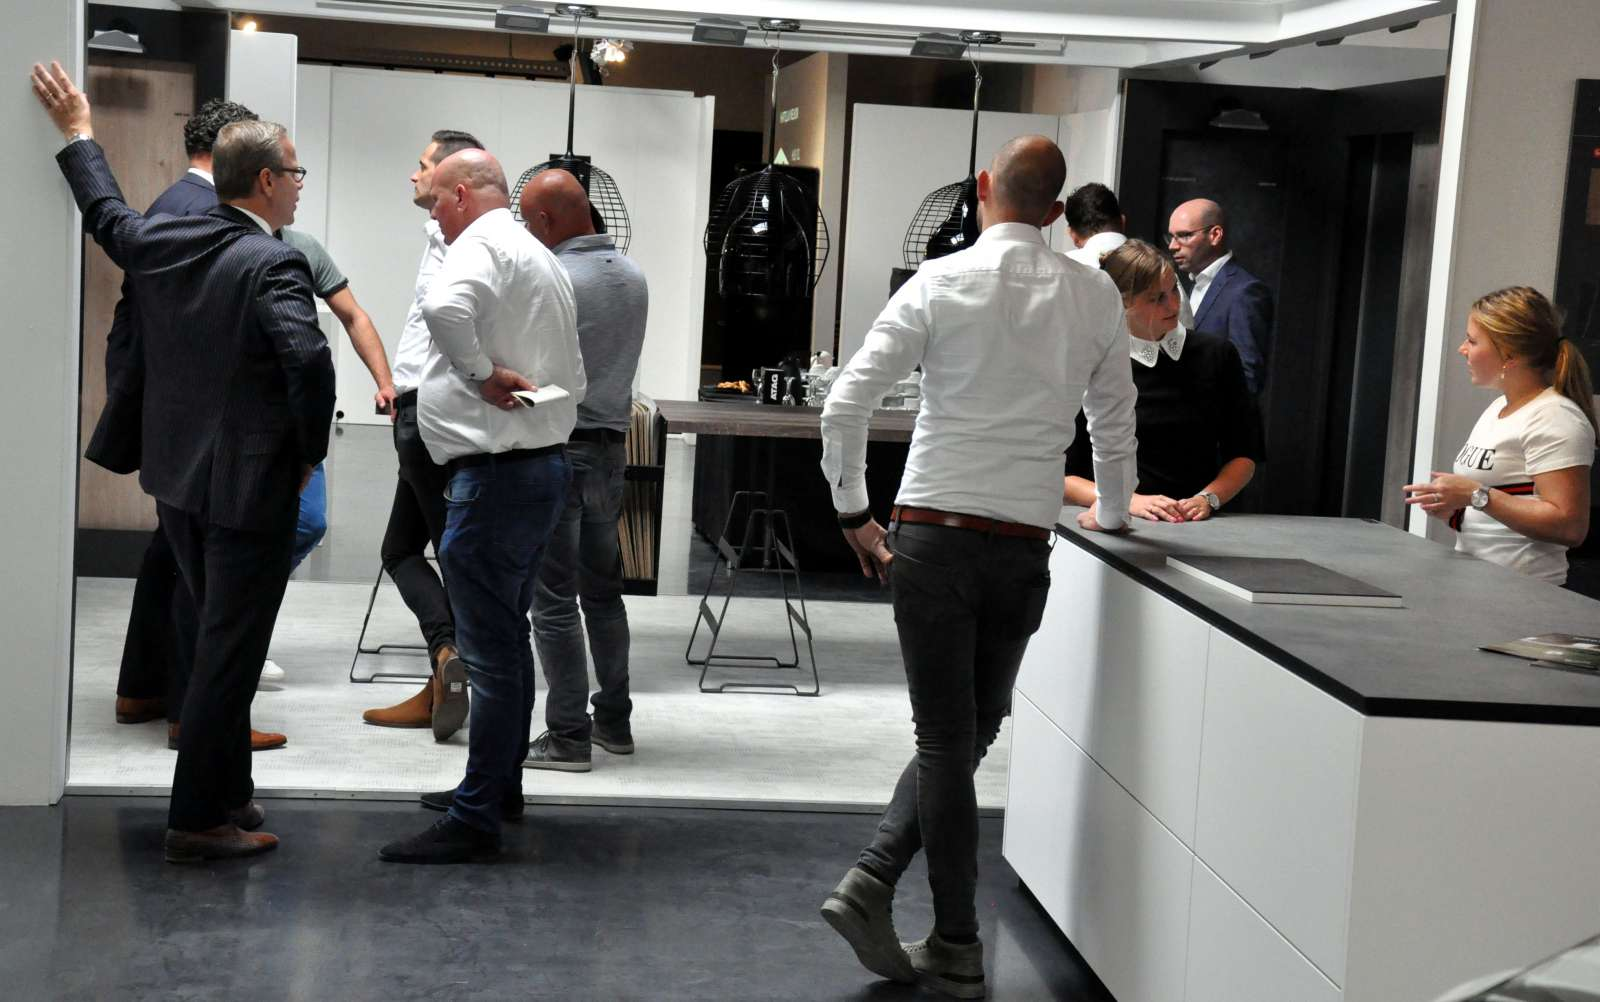 servicepoint A30 x Holland Trend Haus